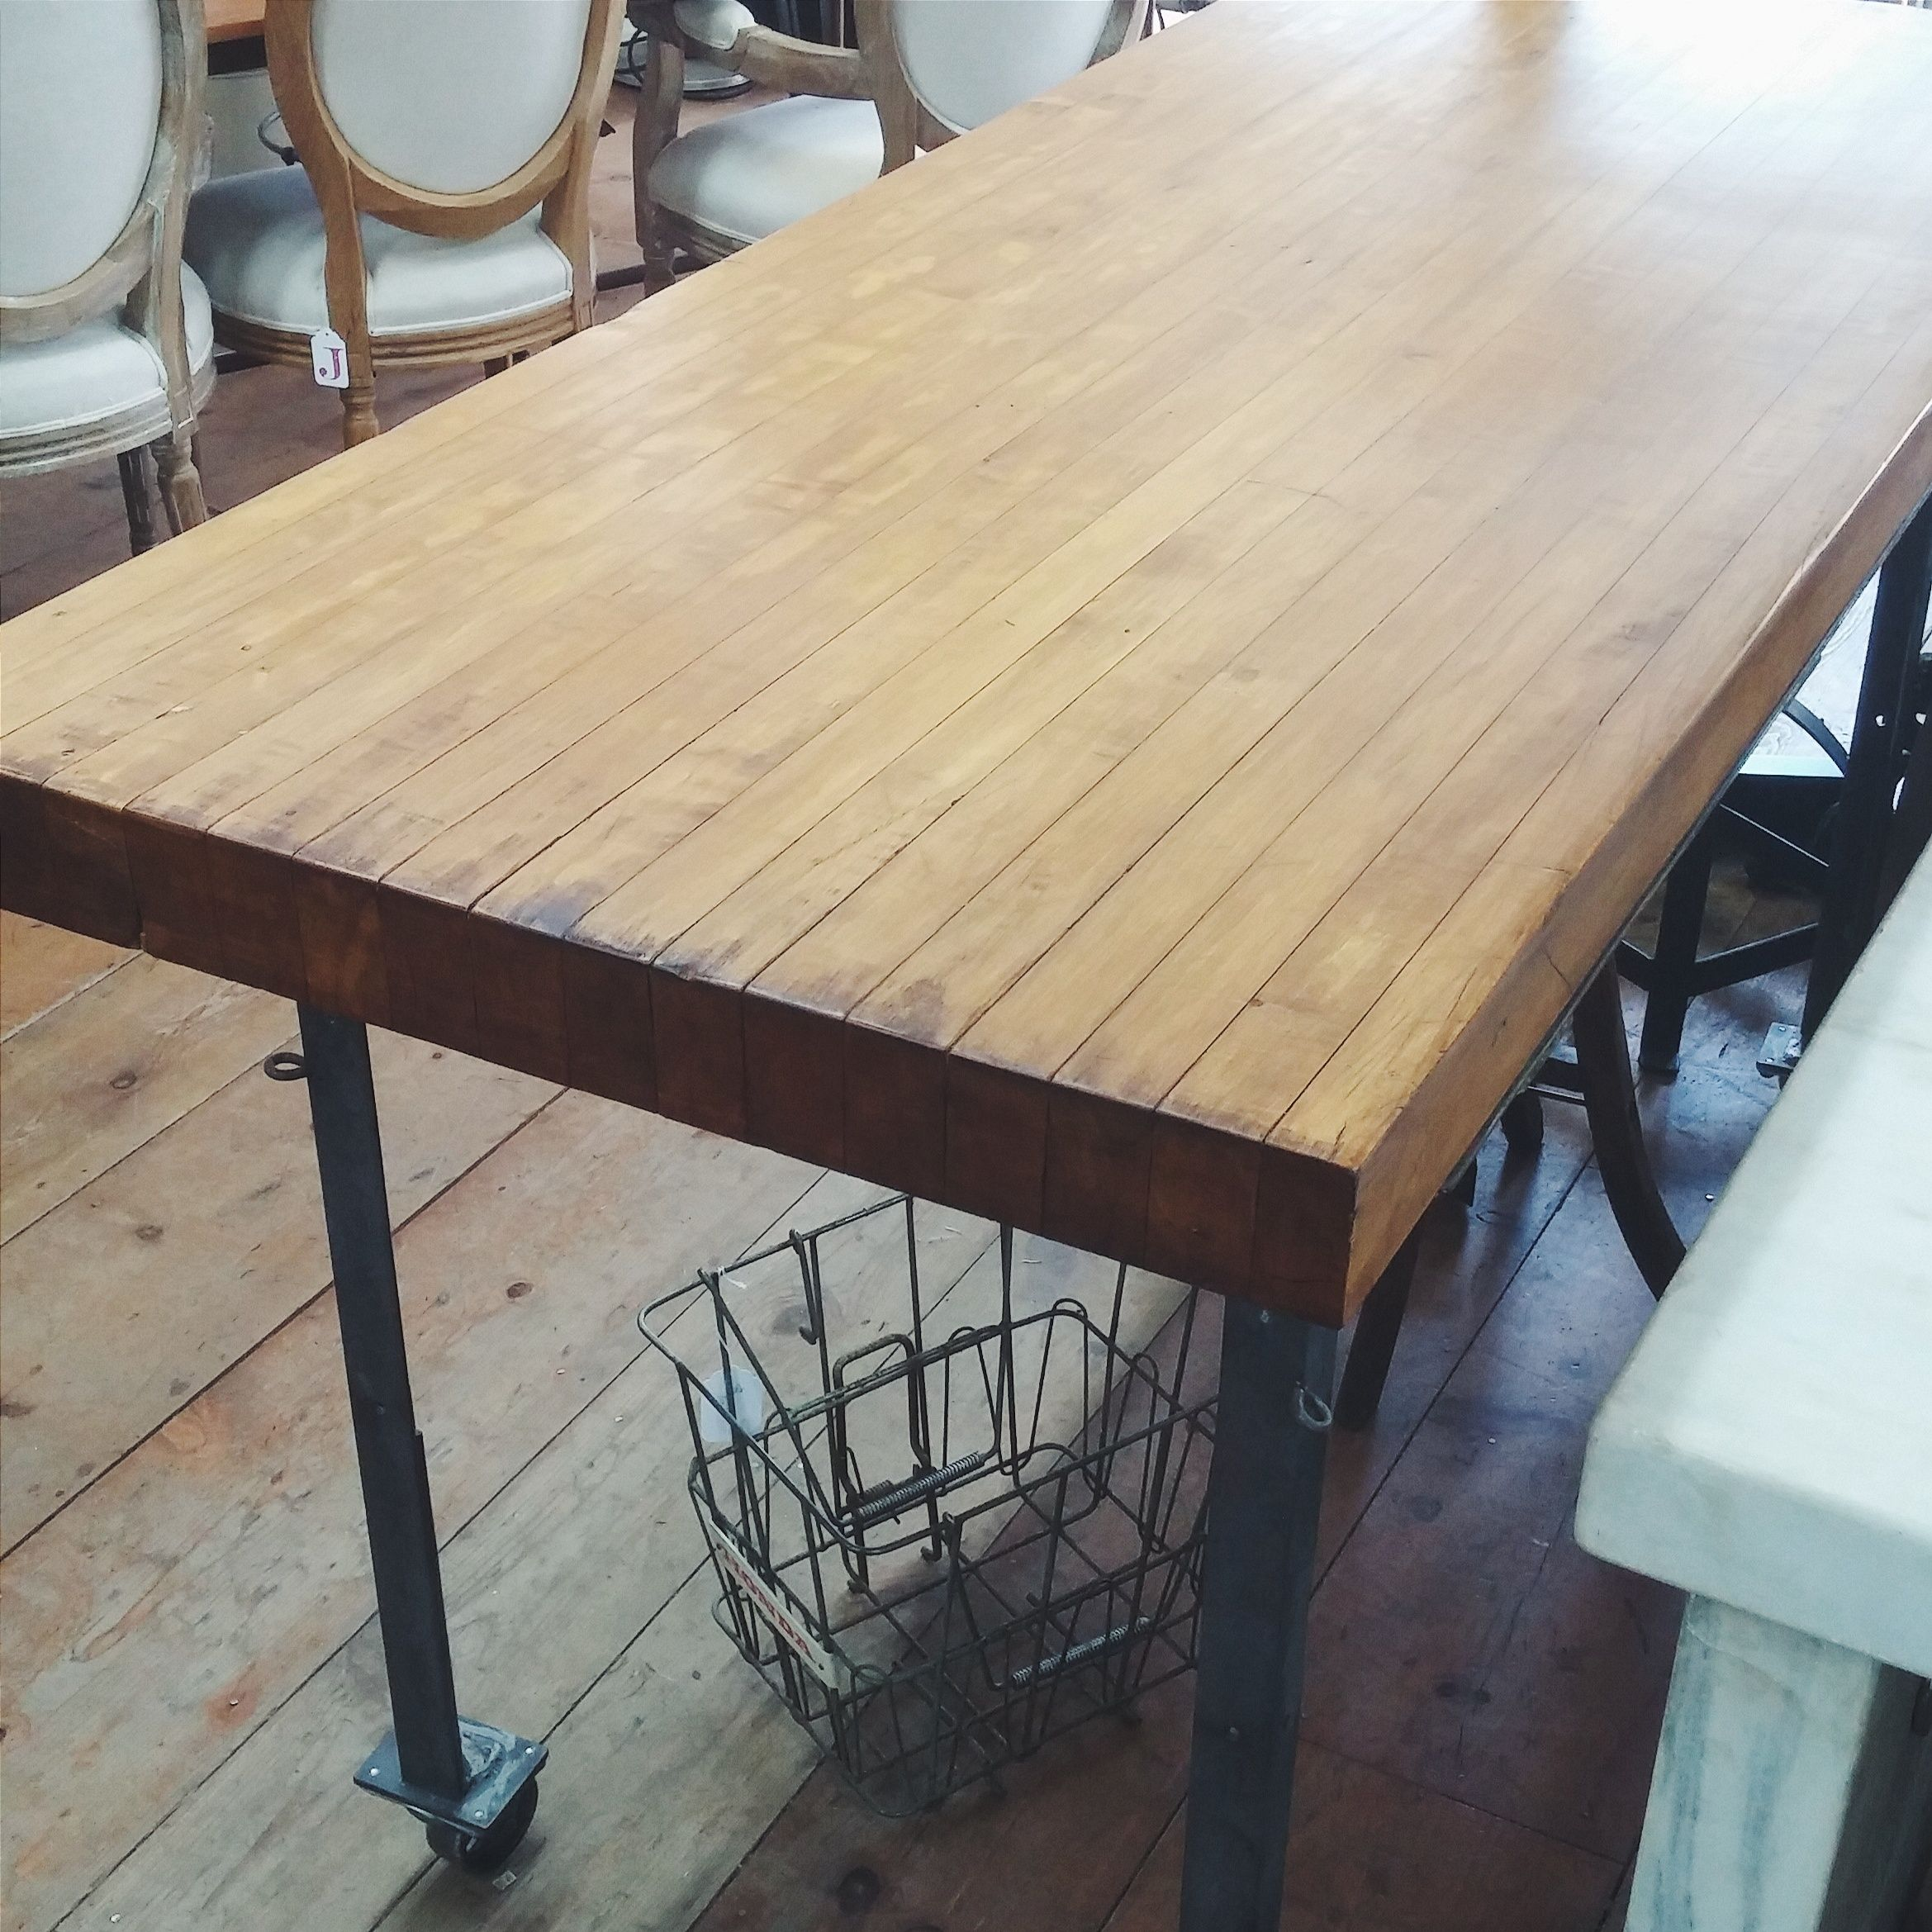 Industrial Counter ~ Old Wood Butcher Block Top W/Old Steel Angle Iron Base  On